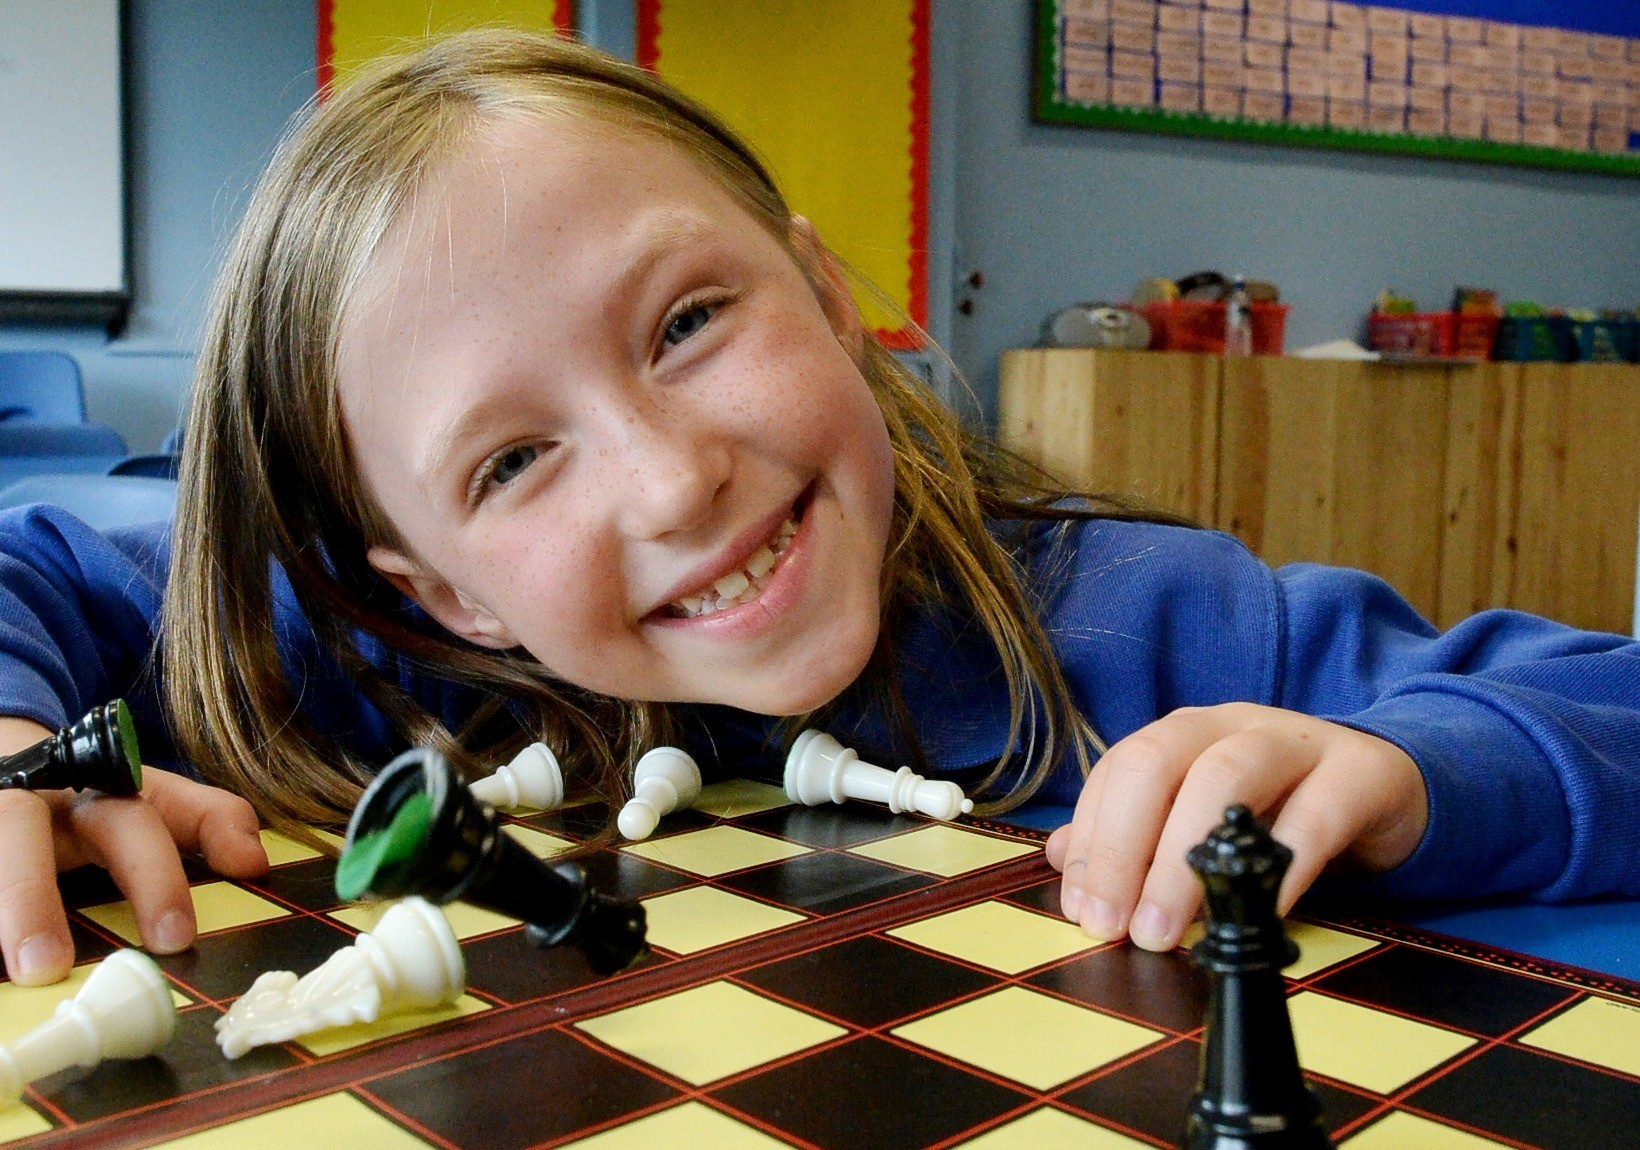 Chepstow chess ace, 8, could play in South Africa